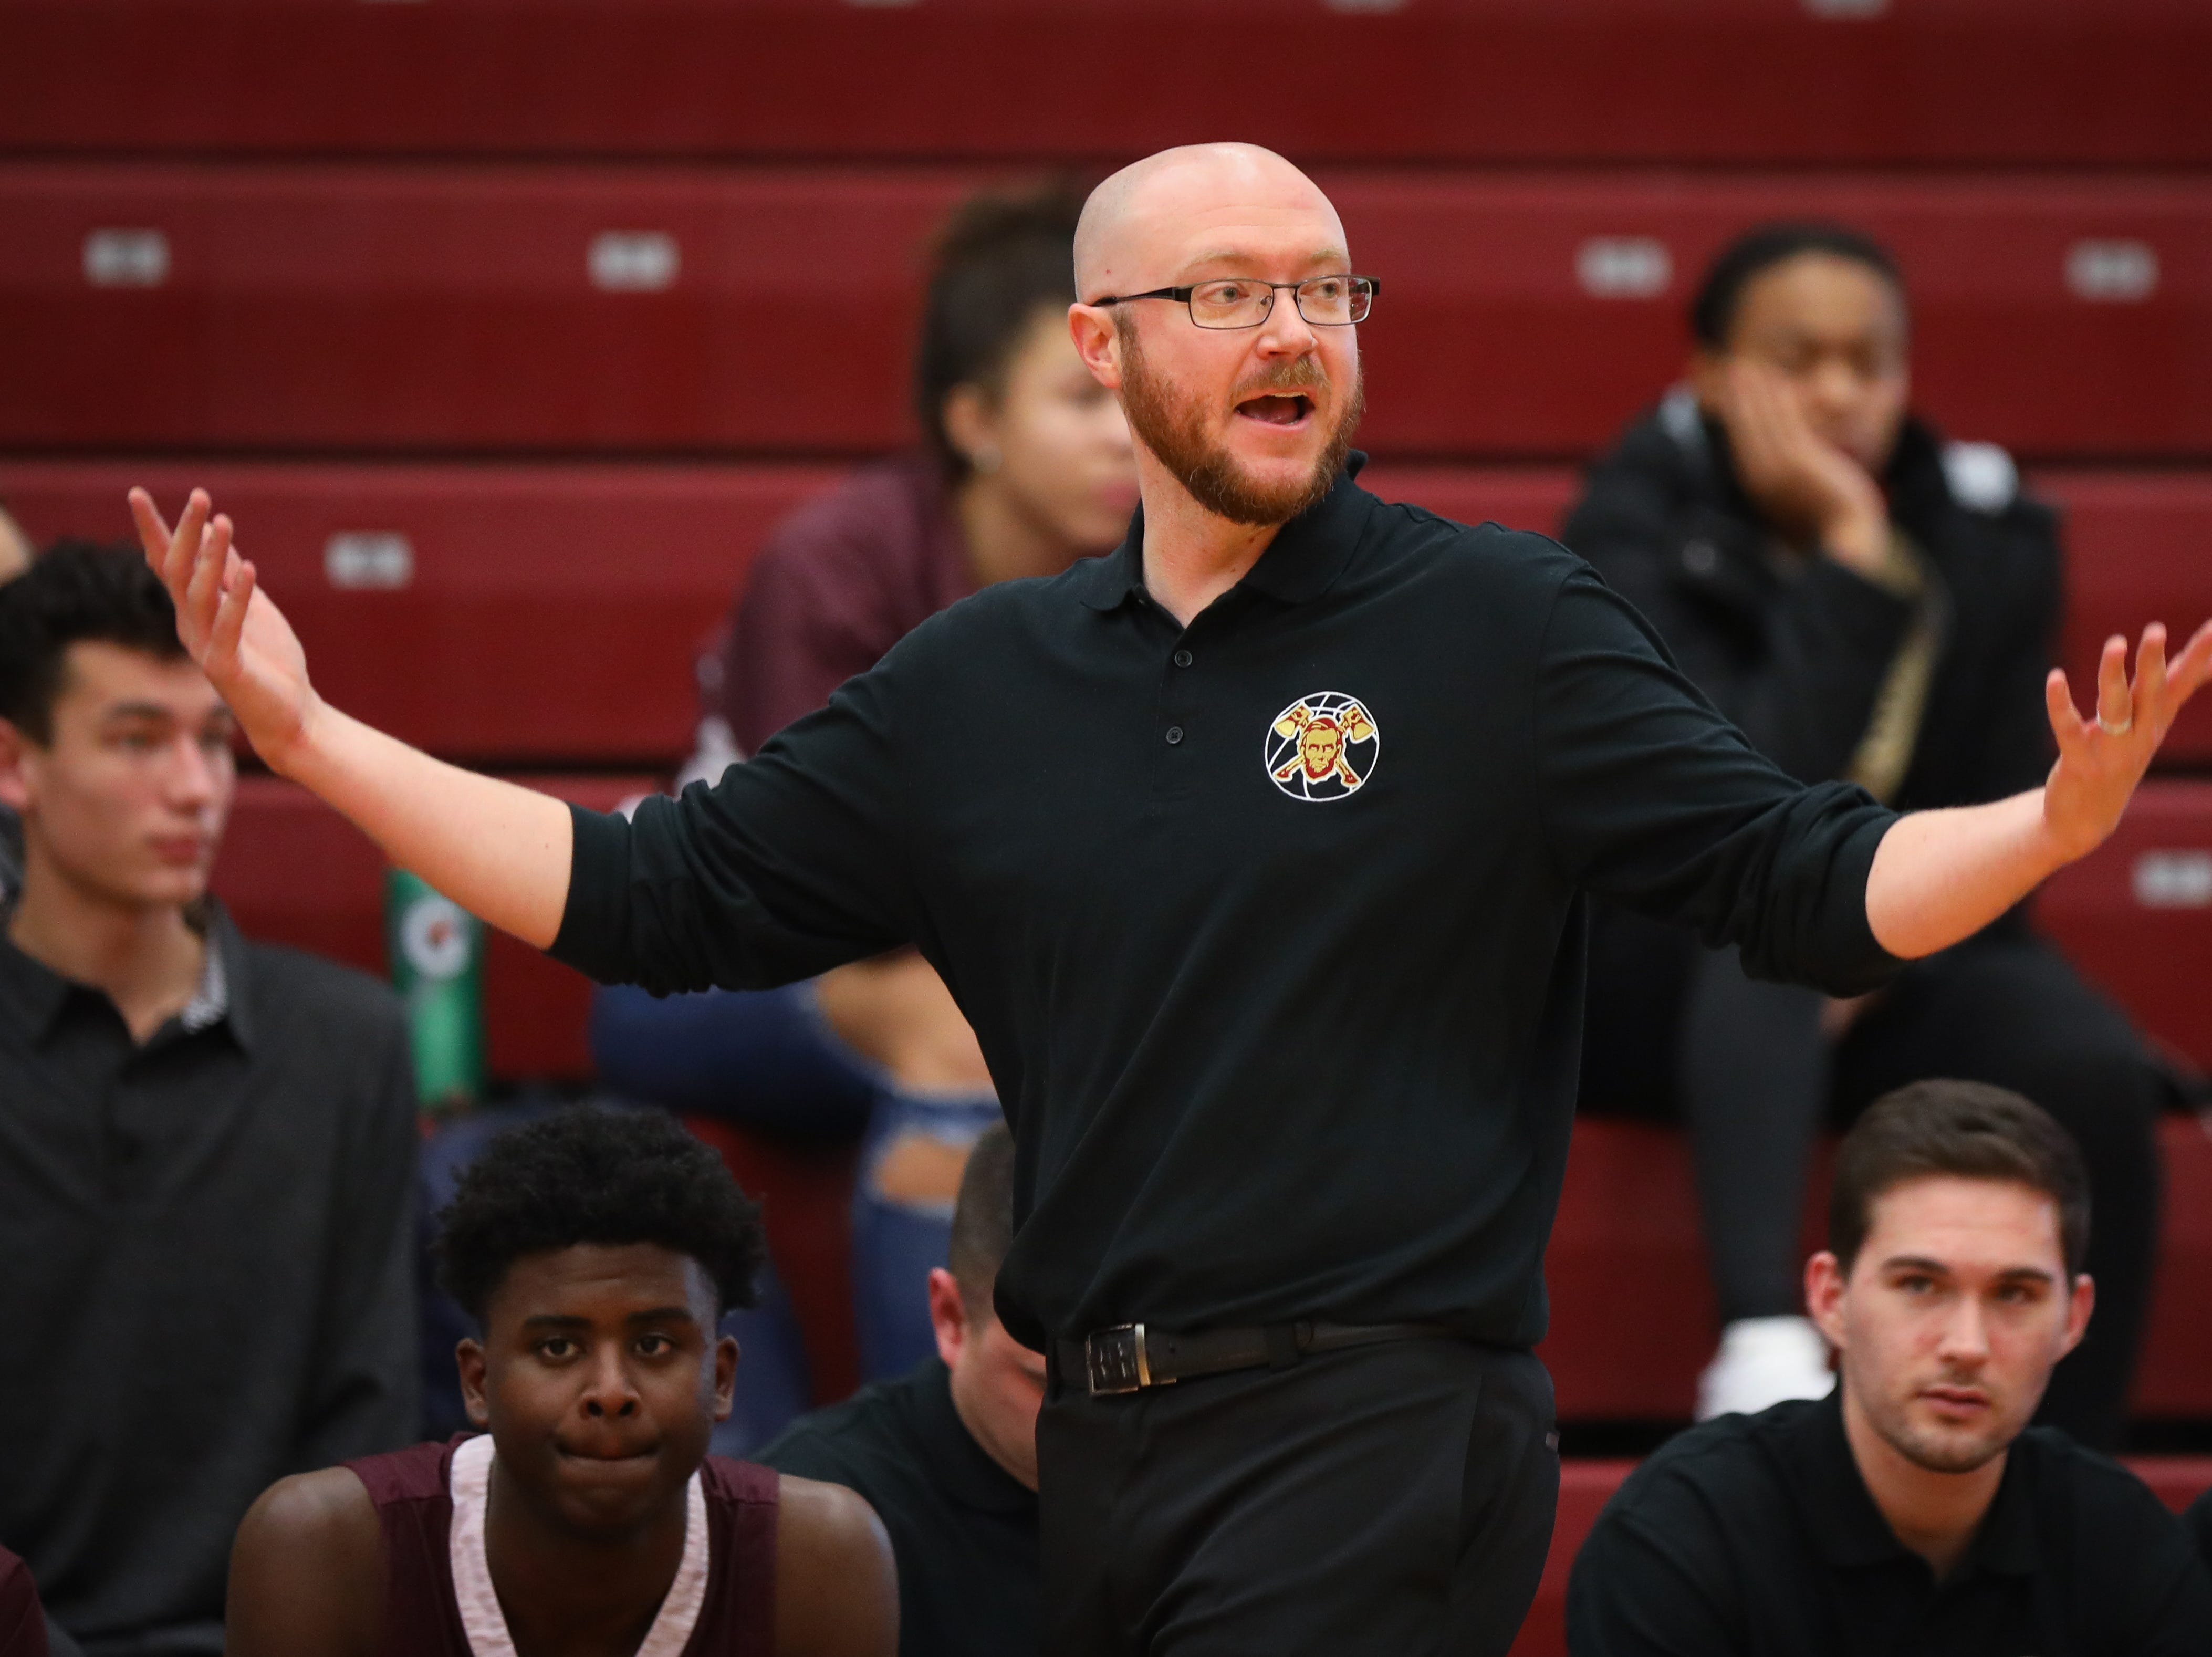 Lincoln head coach Justin Einerson complains about a call during a boys high school basketball game between the Lincoln Railsplitters and the Ankeny Hawks at Ankeny High School on Dec. 4, 2018 in Ankeny, Iowa.